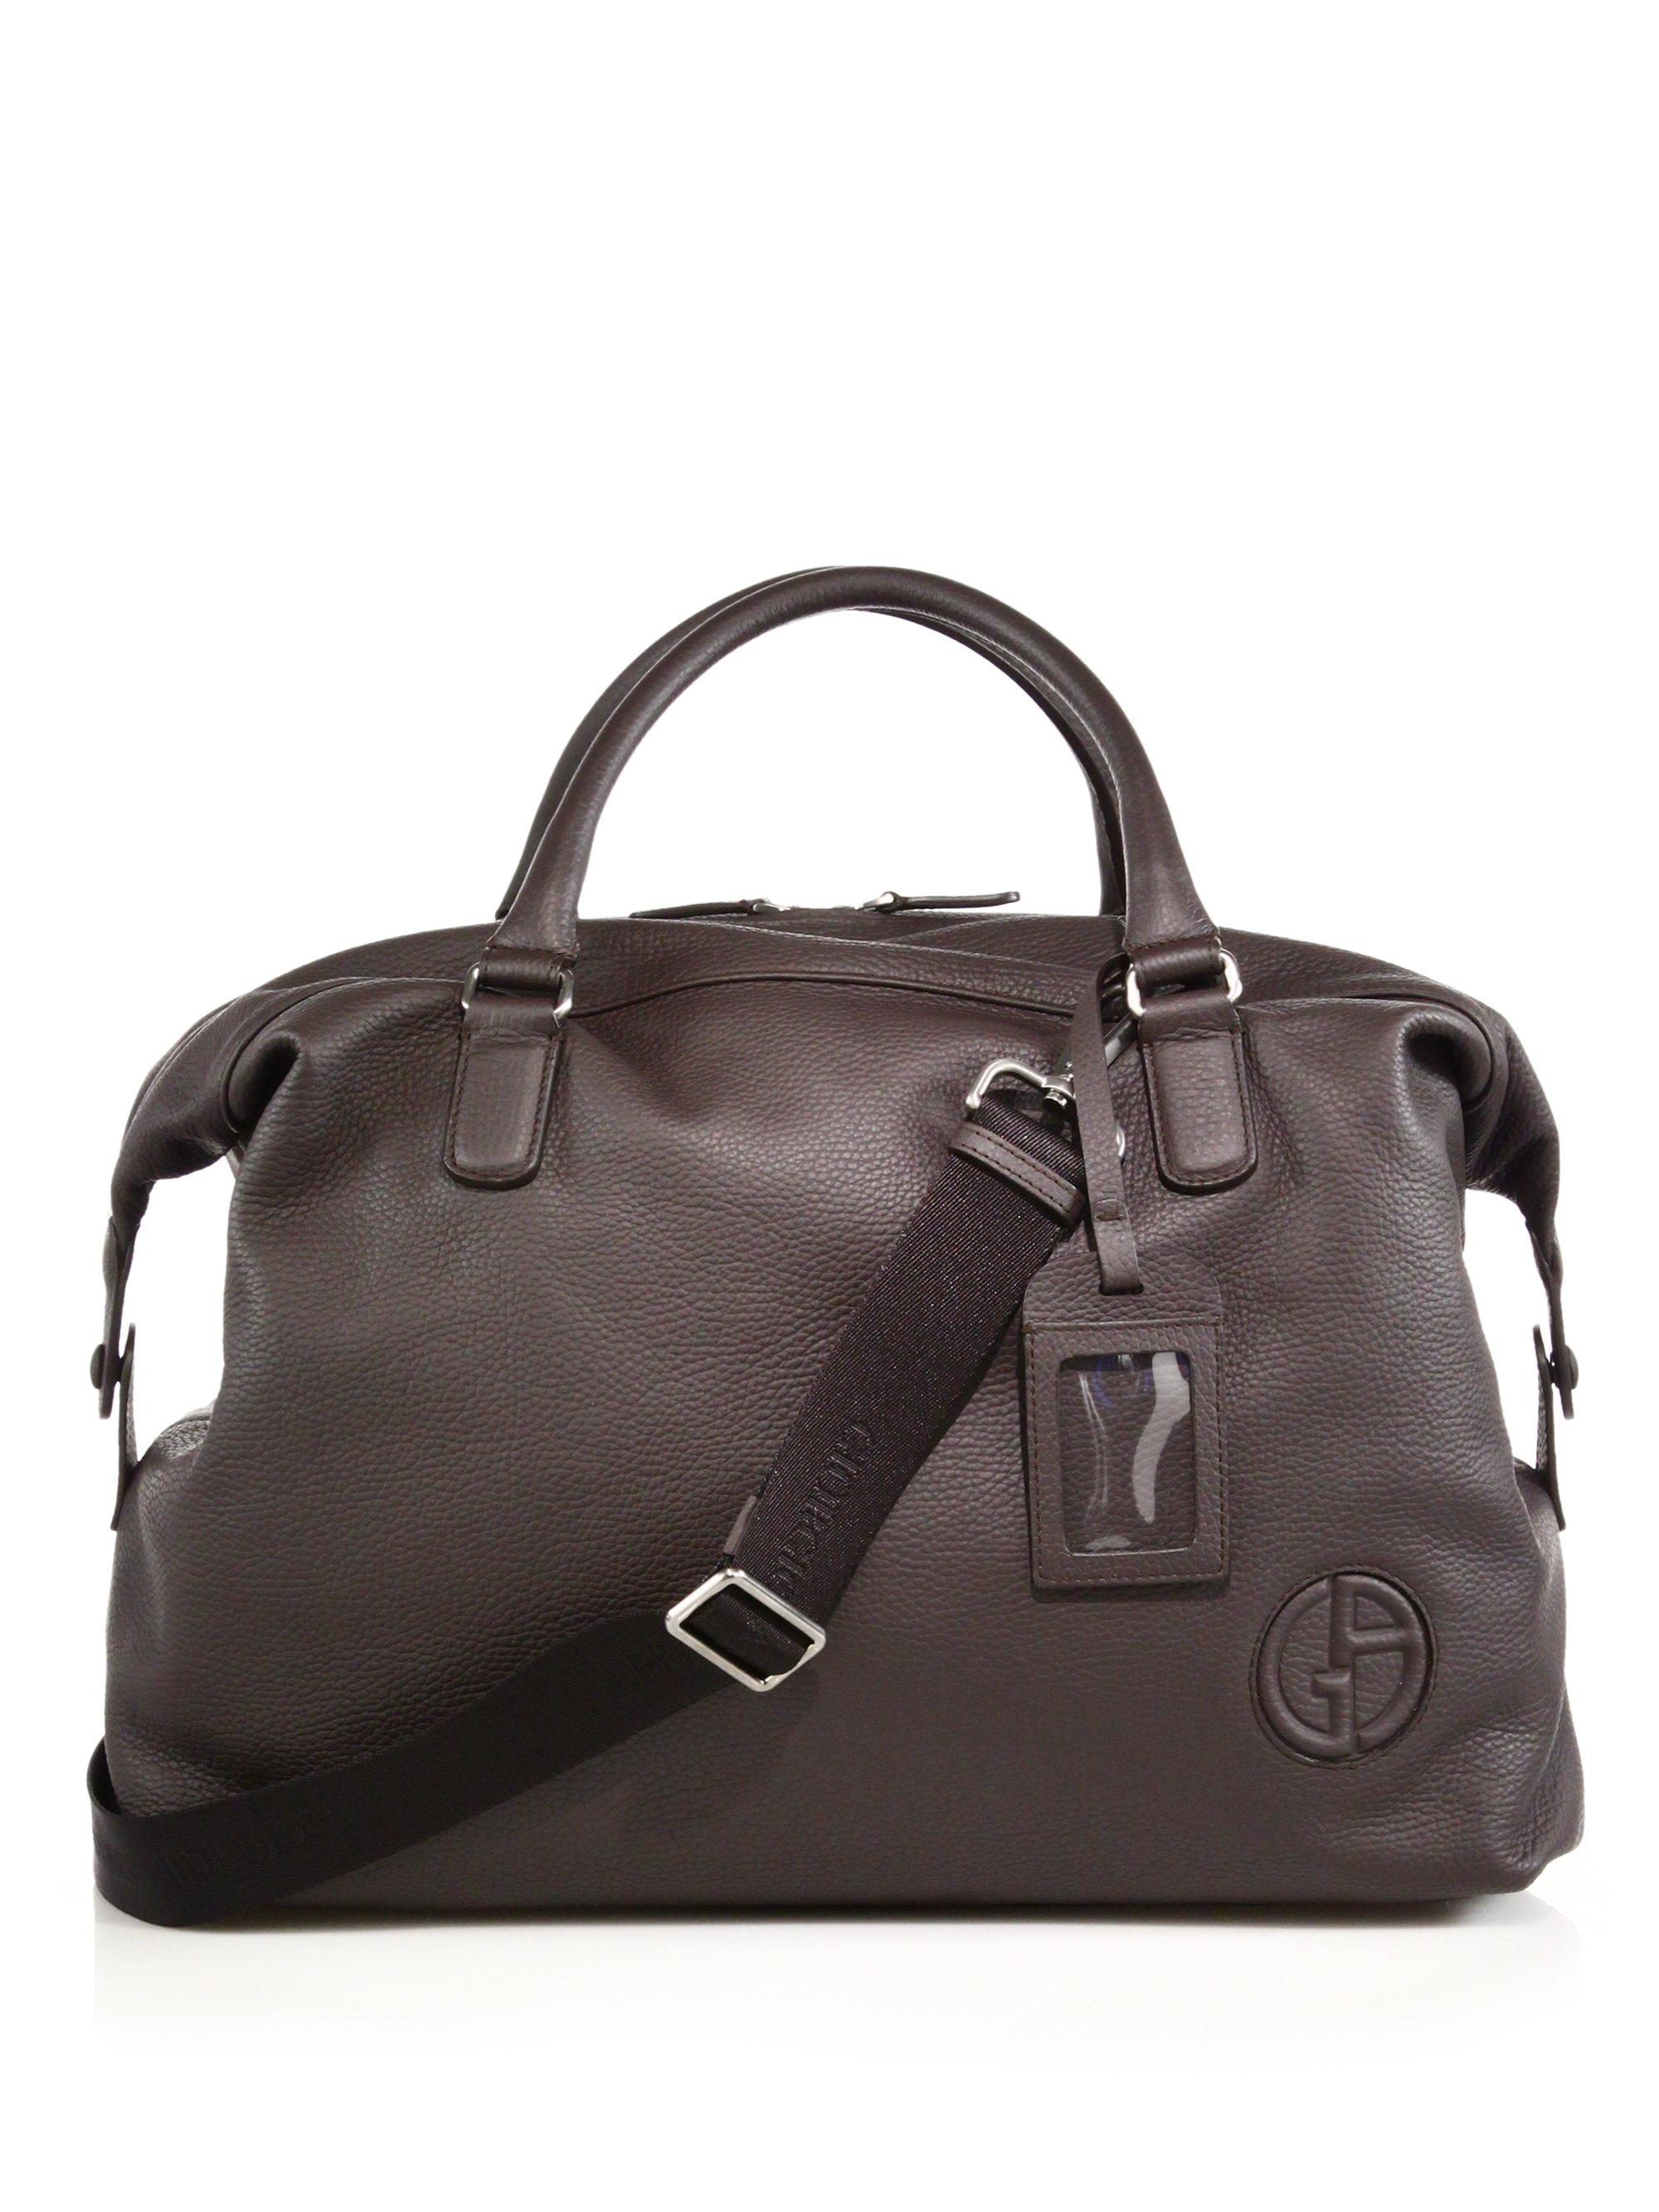 90ee907f8d01 Lyst - Giorgio Armani Leather Holdall in Brown for Men